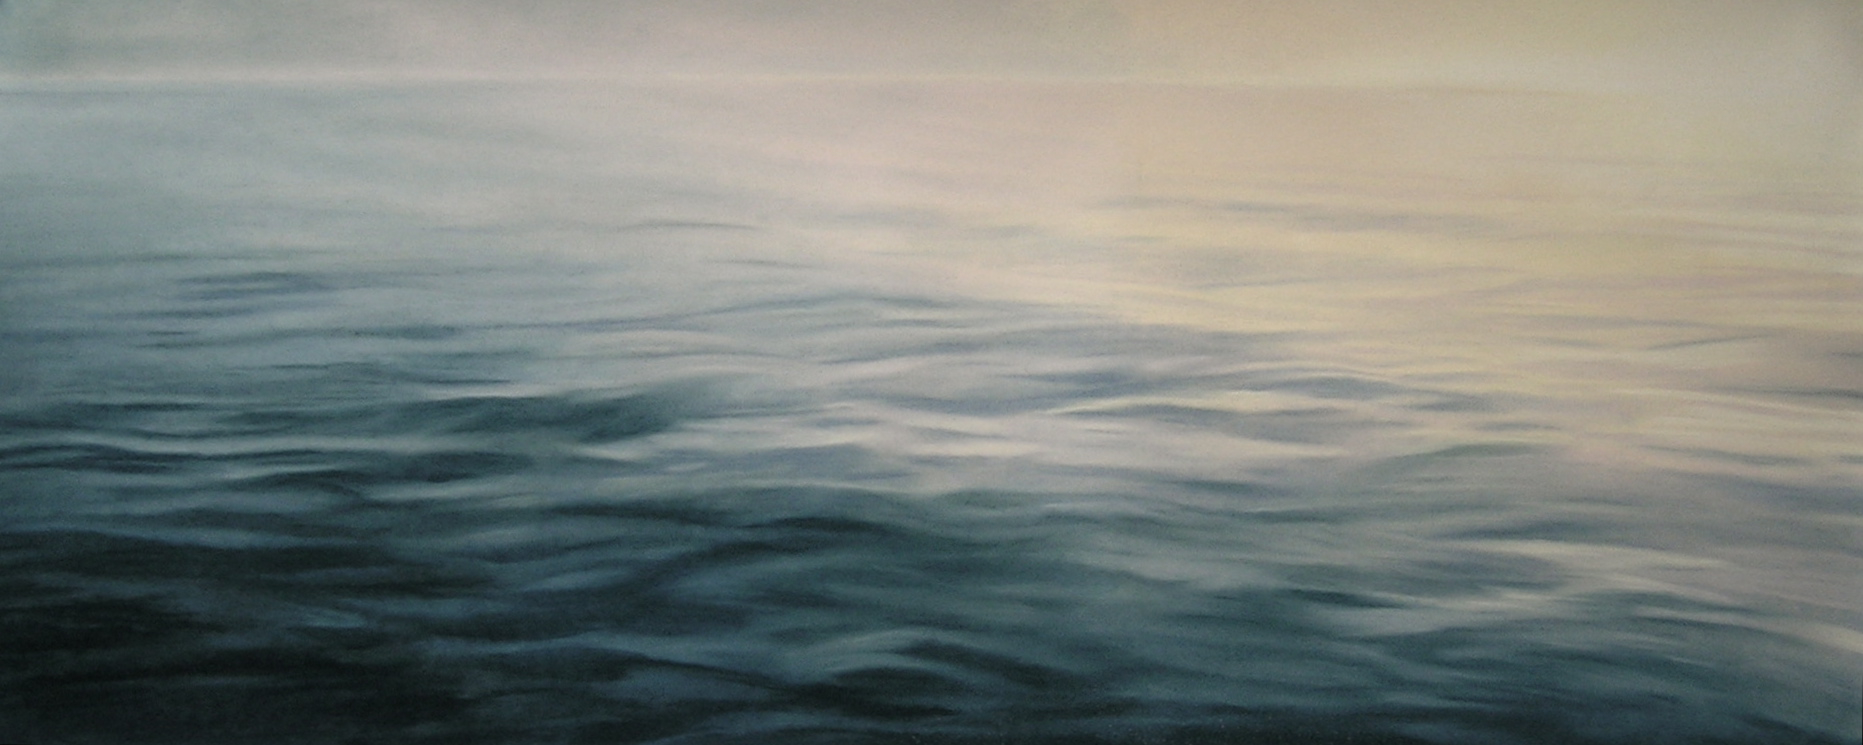 "Greenland #37  , Zaria Forman.  20"" x 50"", soft pastel on paper"